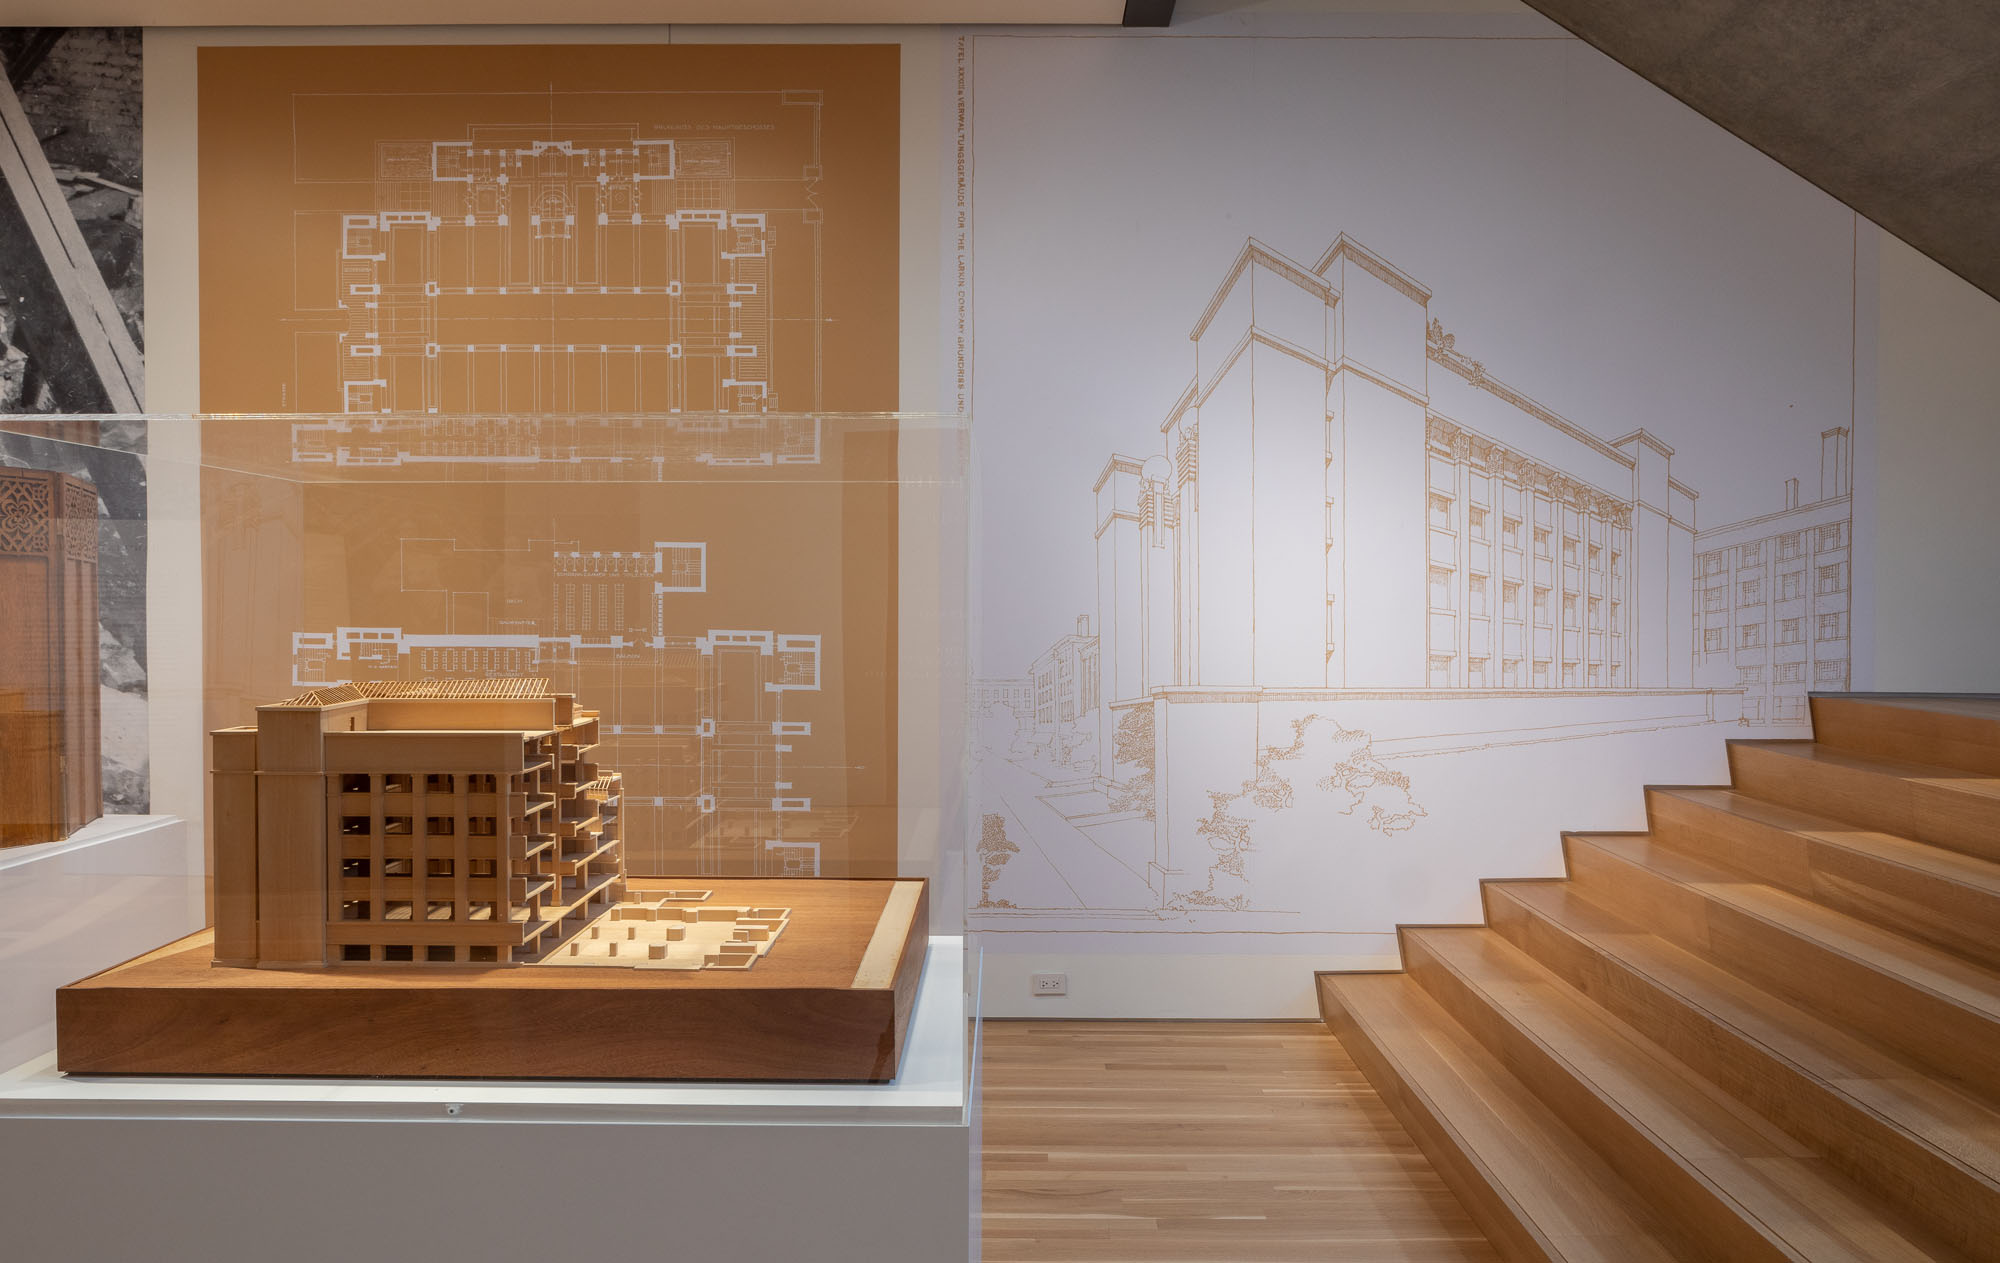 Models and drawings of the Larkin Building.